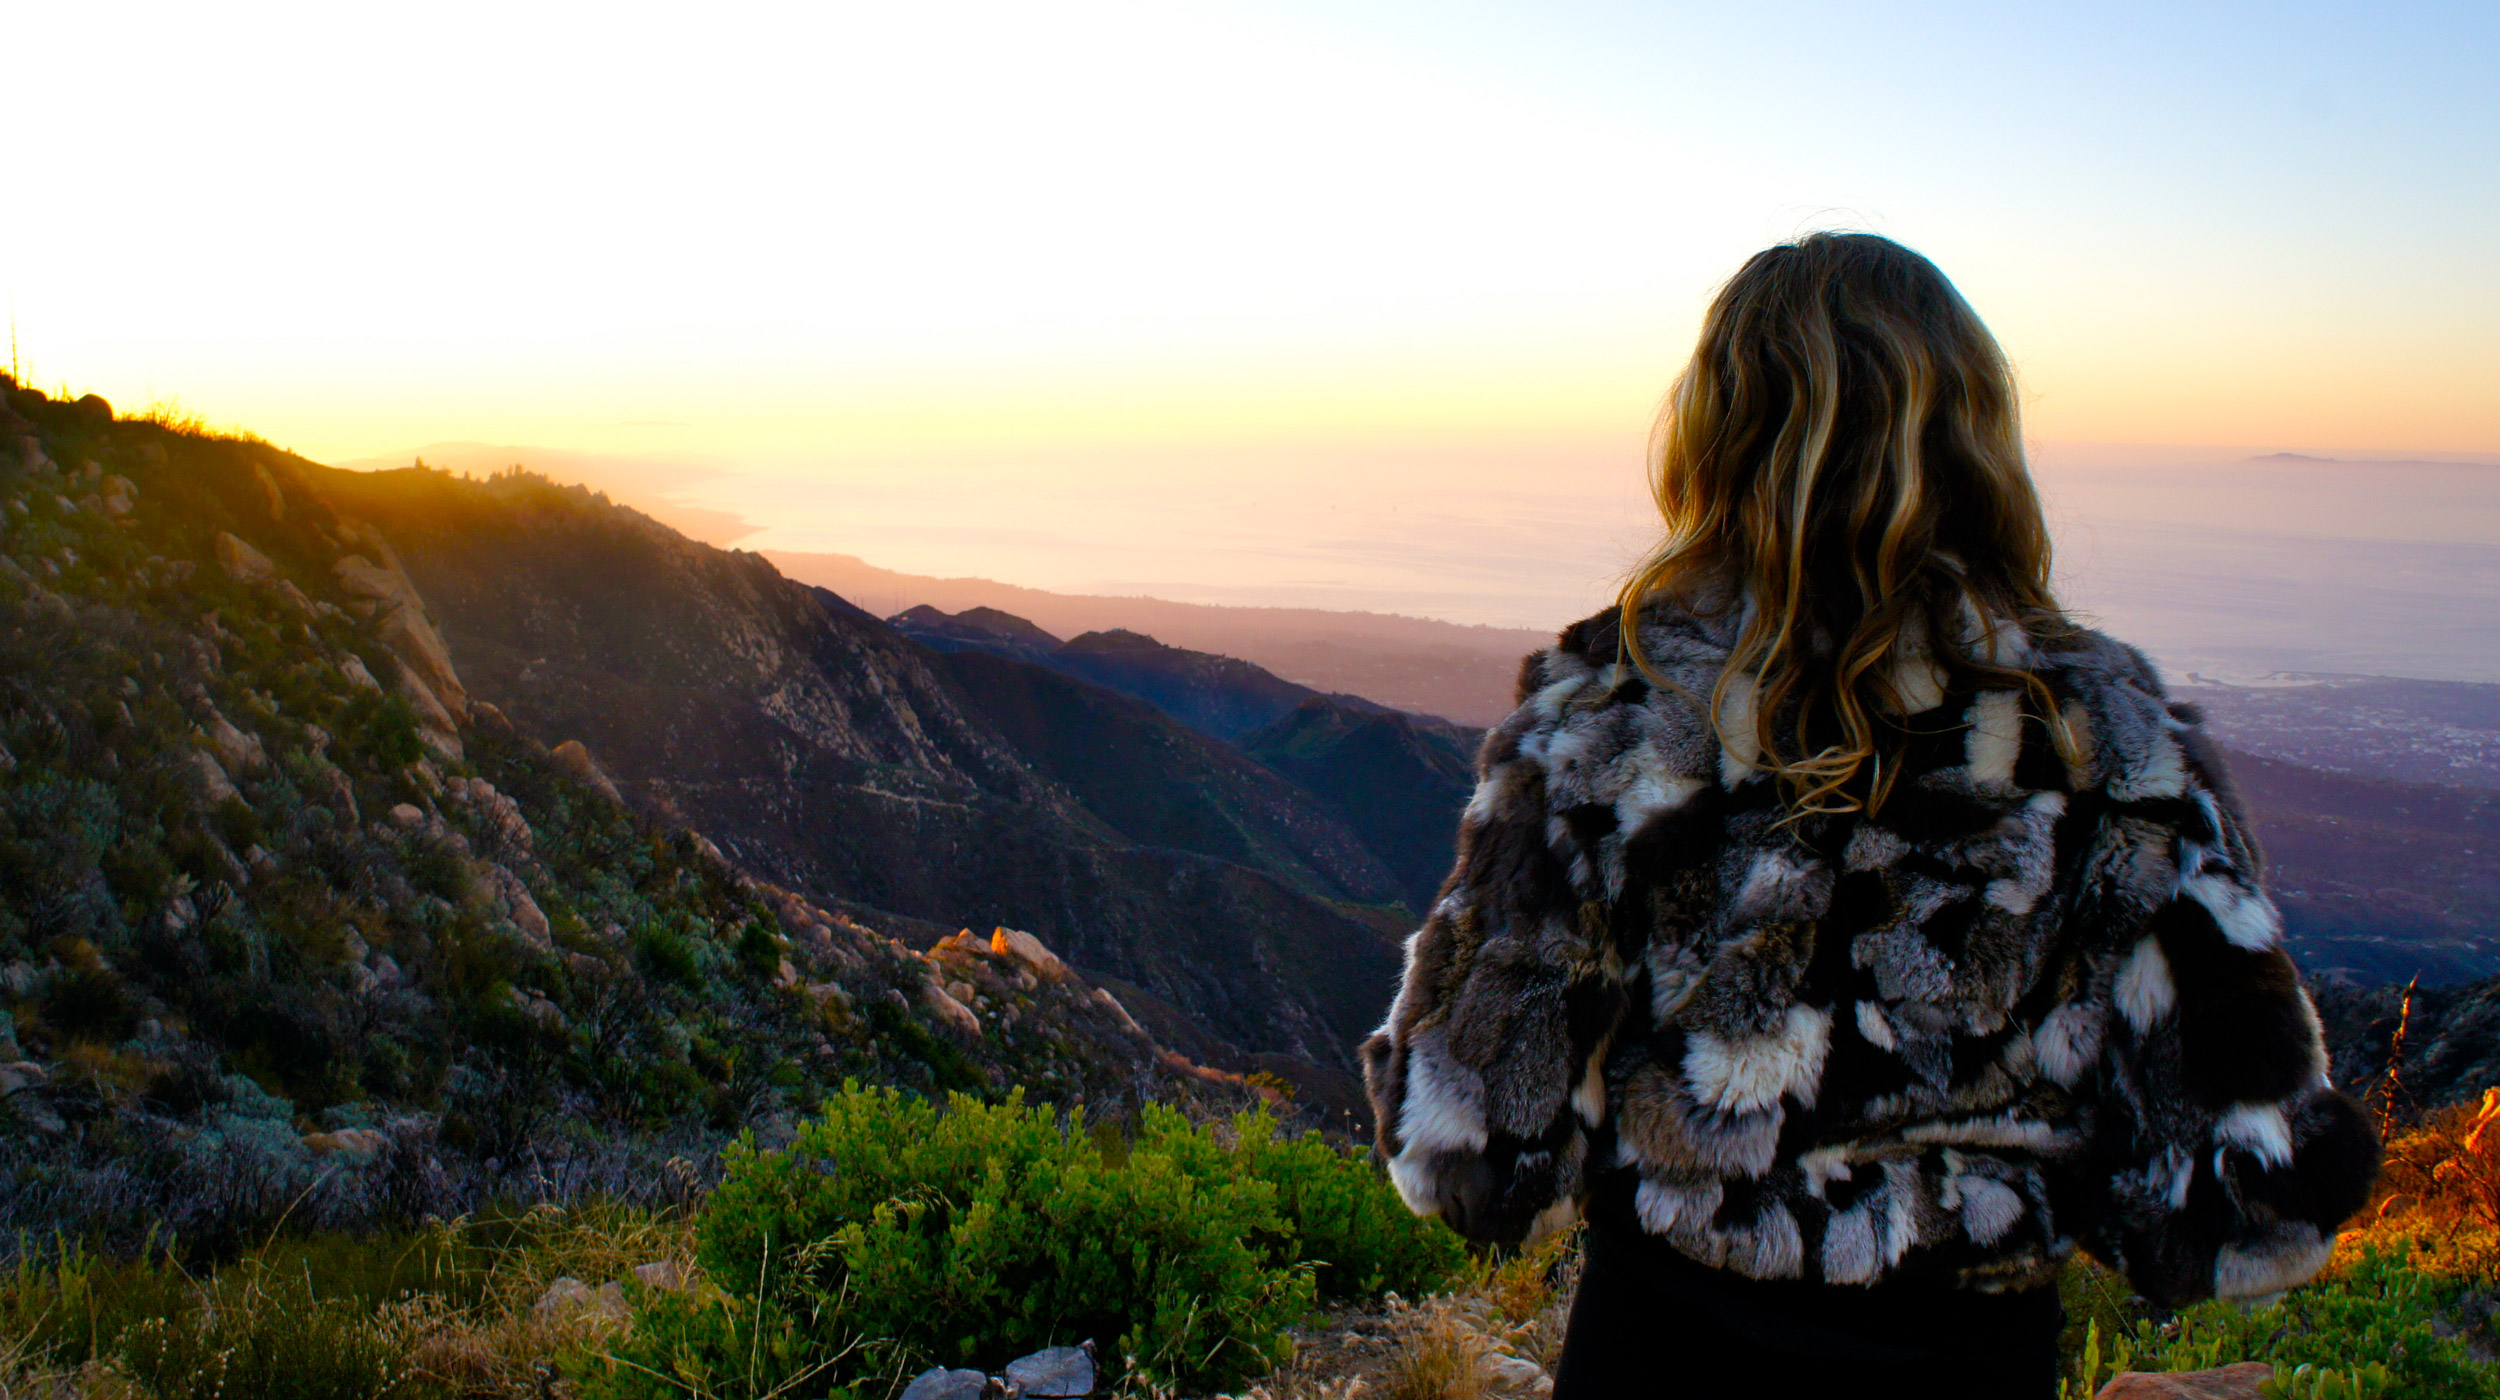 To-look-out-and-hope - Santa Barbara Mountains